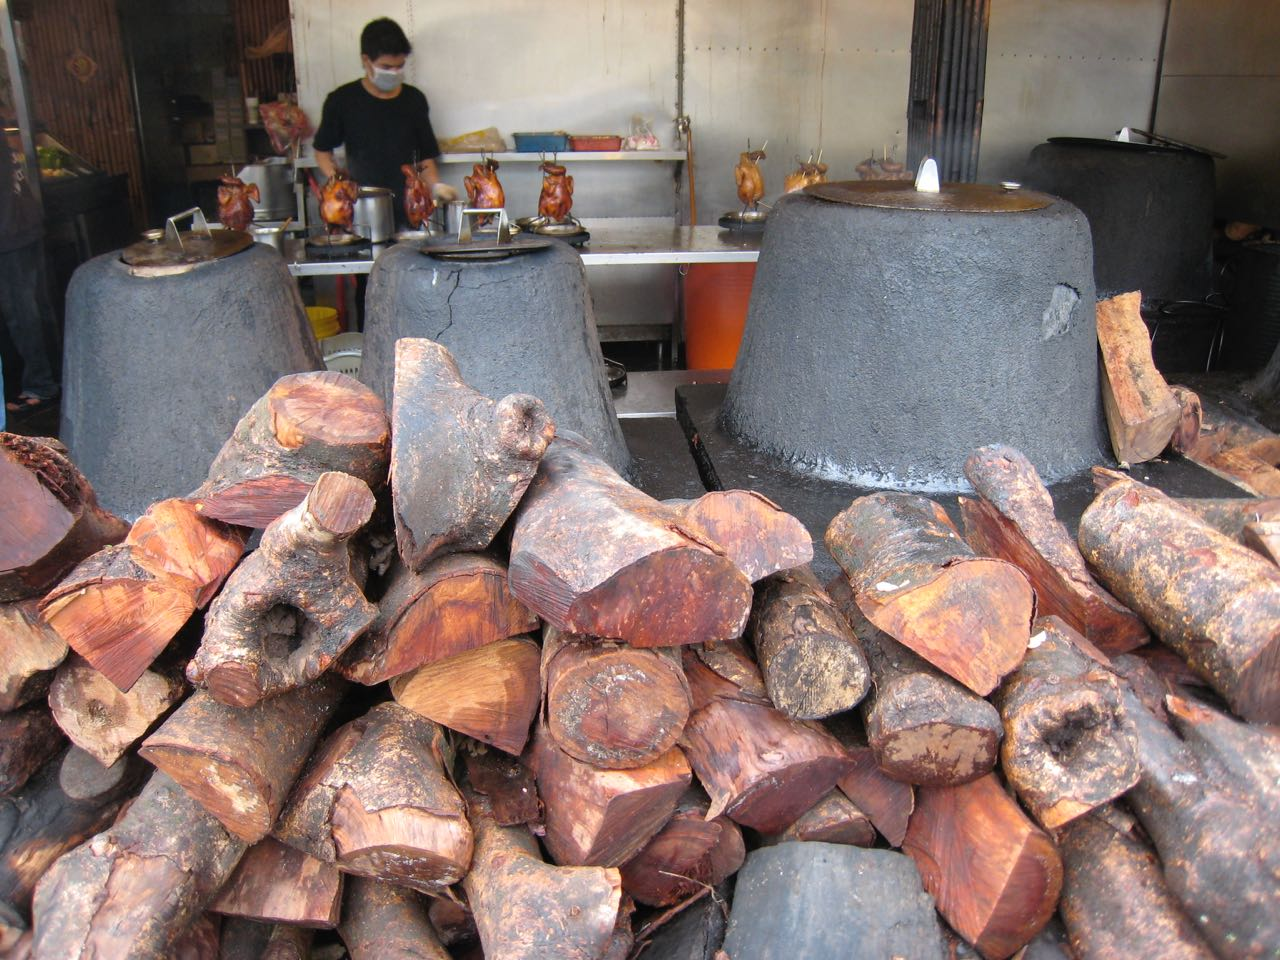 pile of wood in front of 3 kilns for roasting chicken